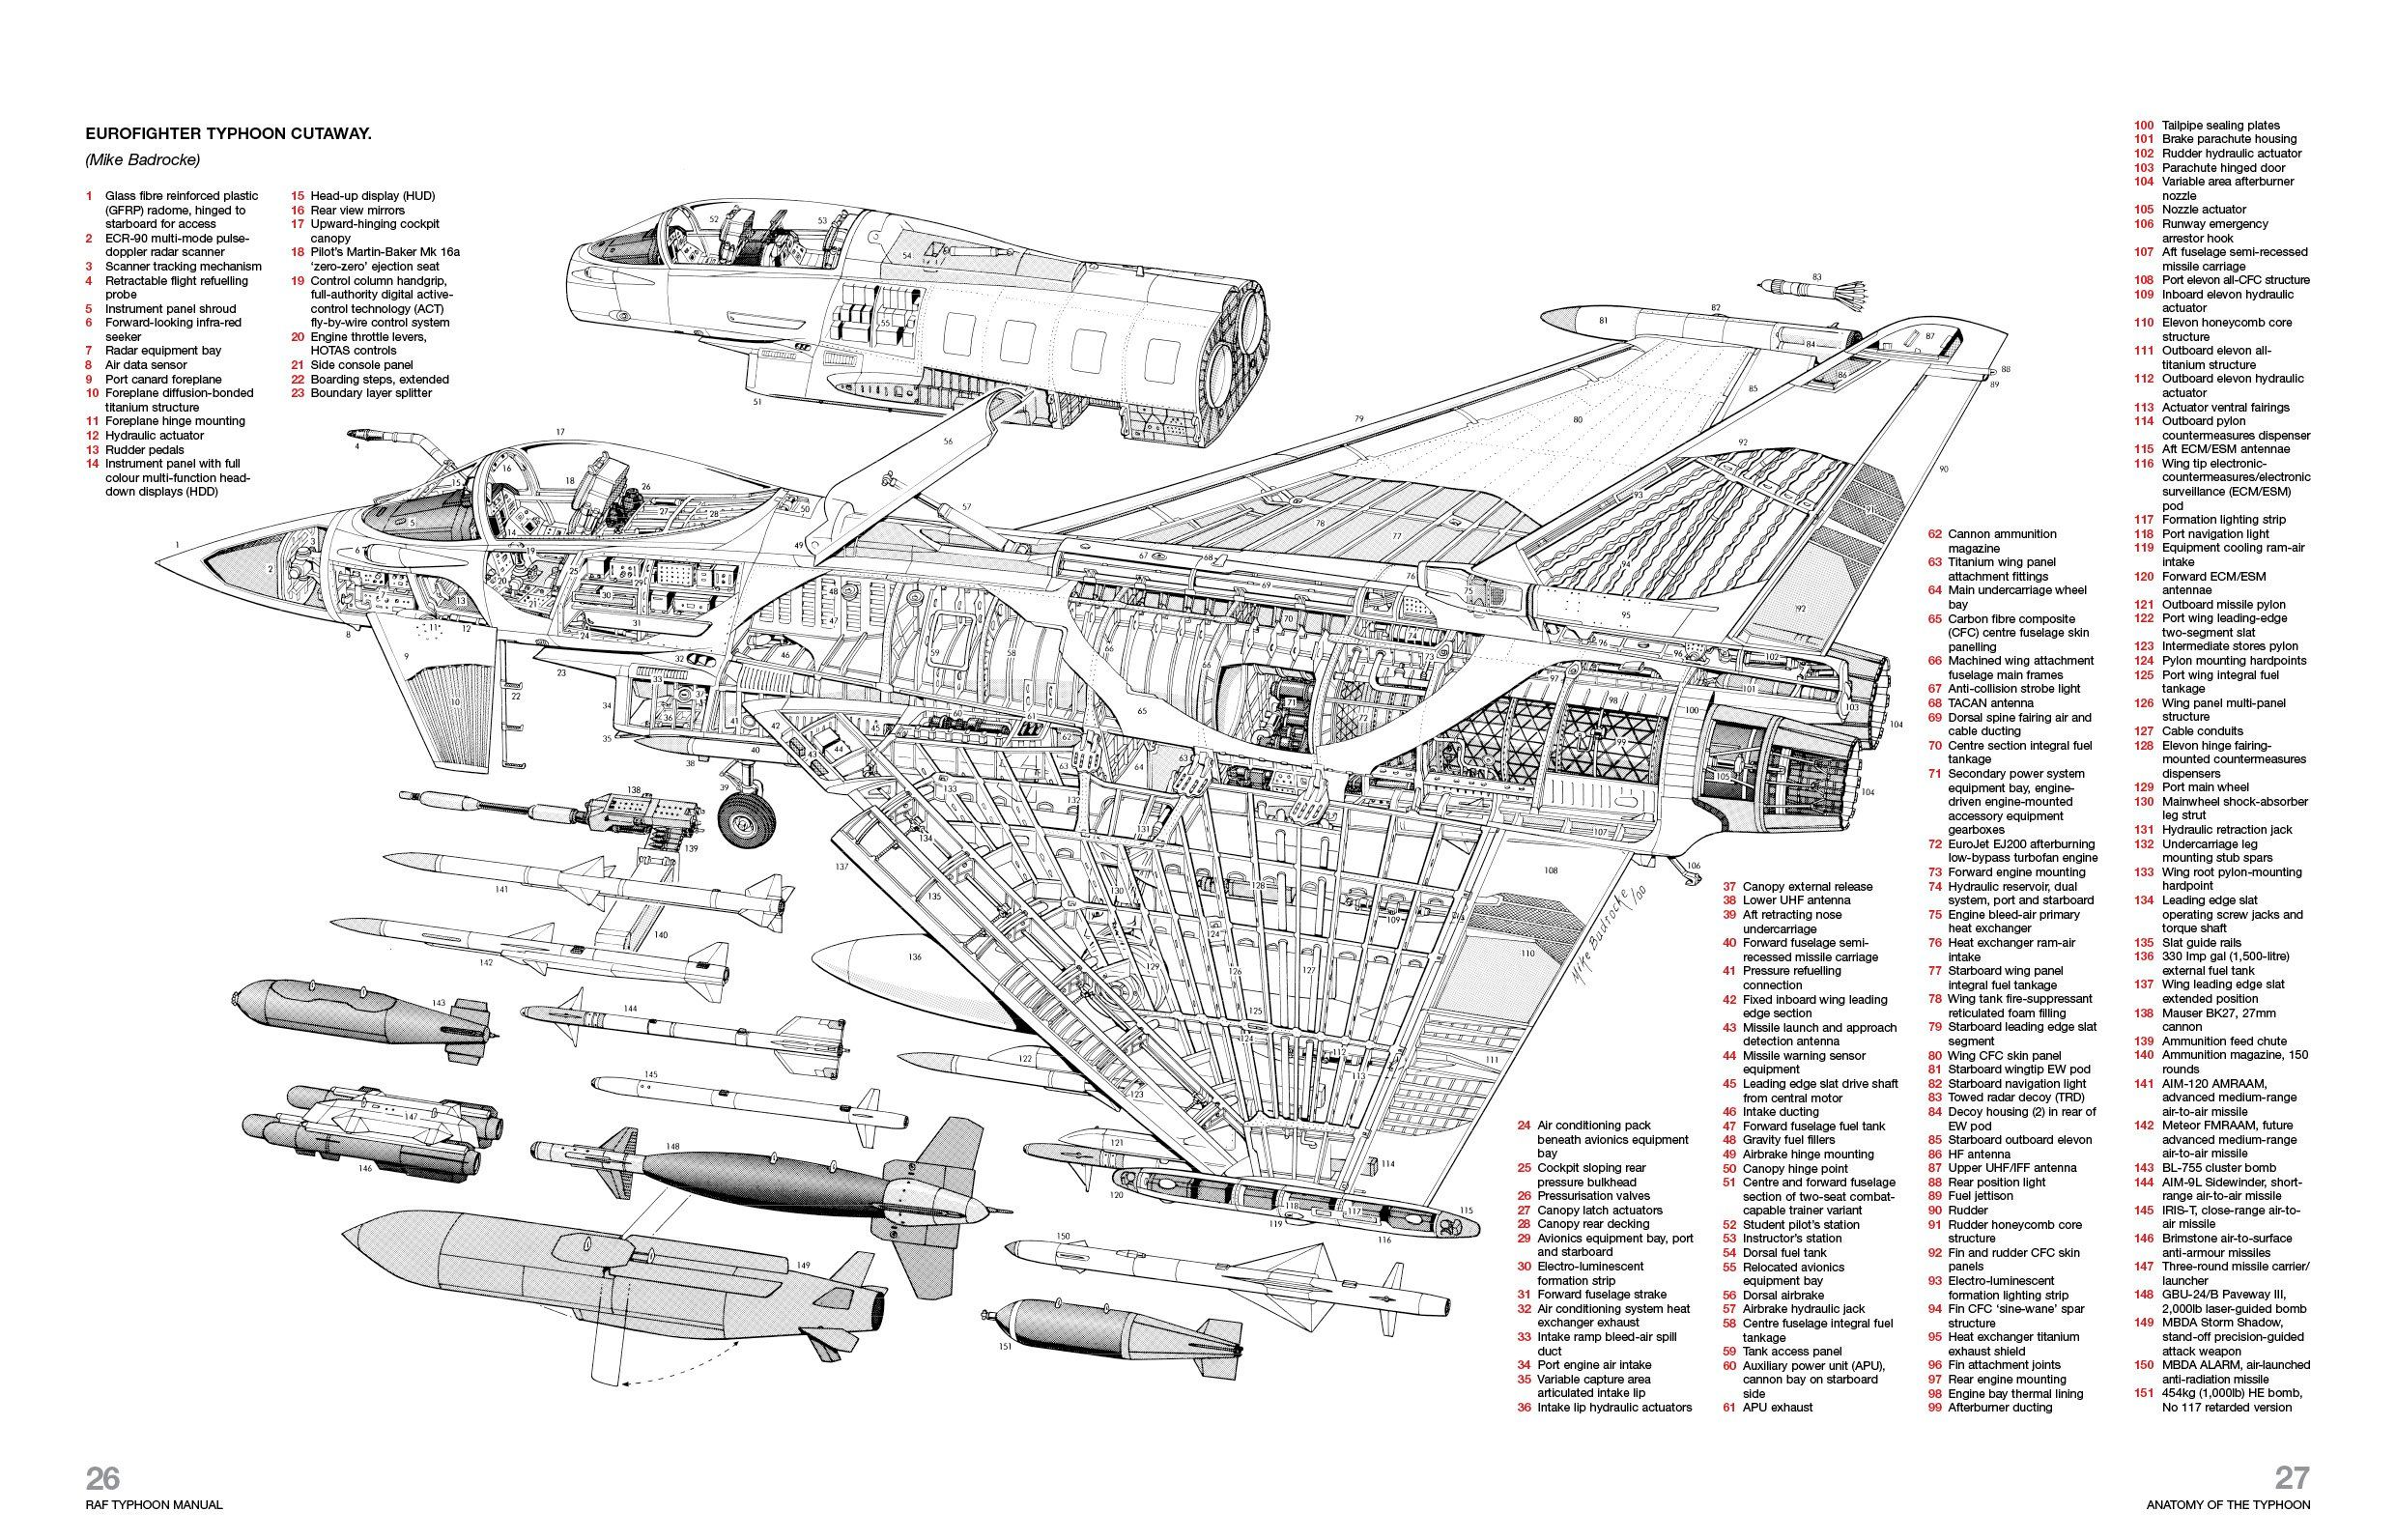 medium resolution of eurofighter typhoon cutaway military jets military aircraft aircraft design cutaway fighter jets